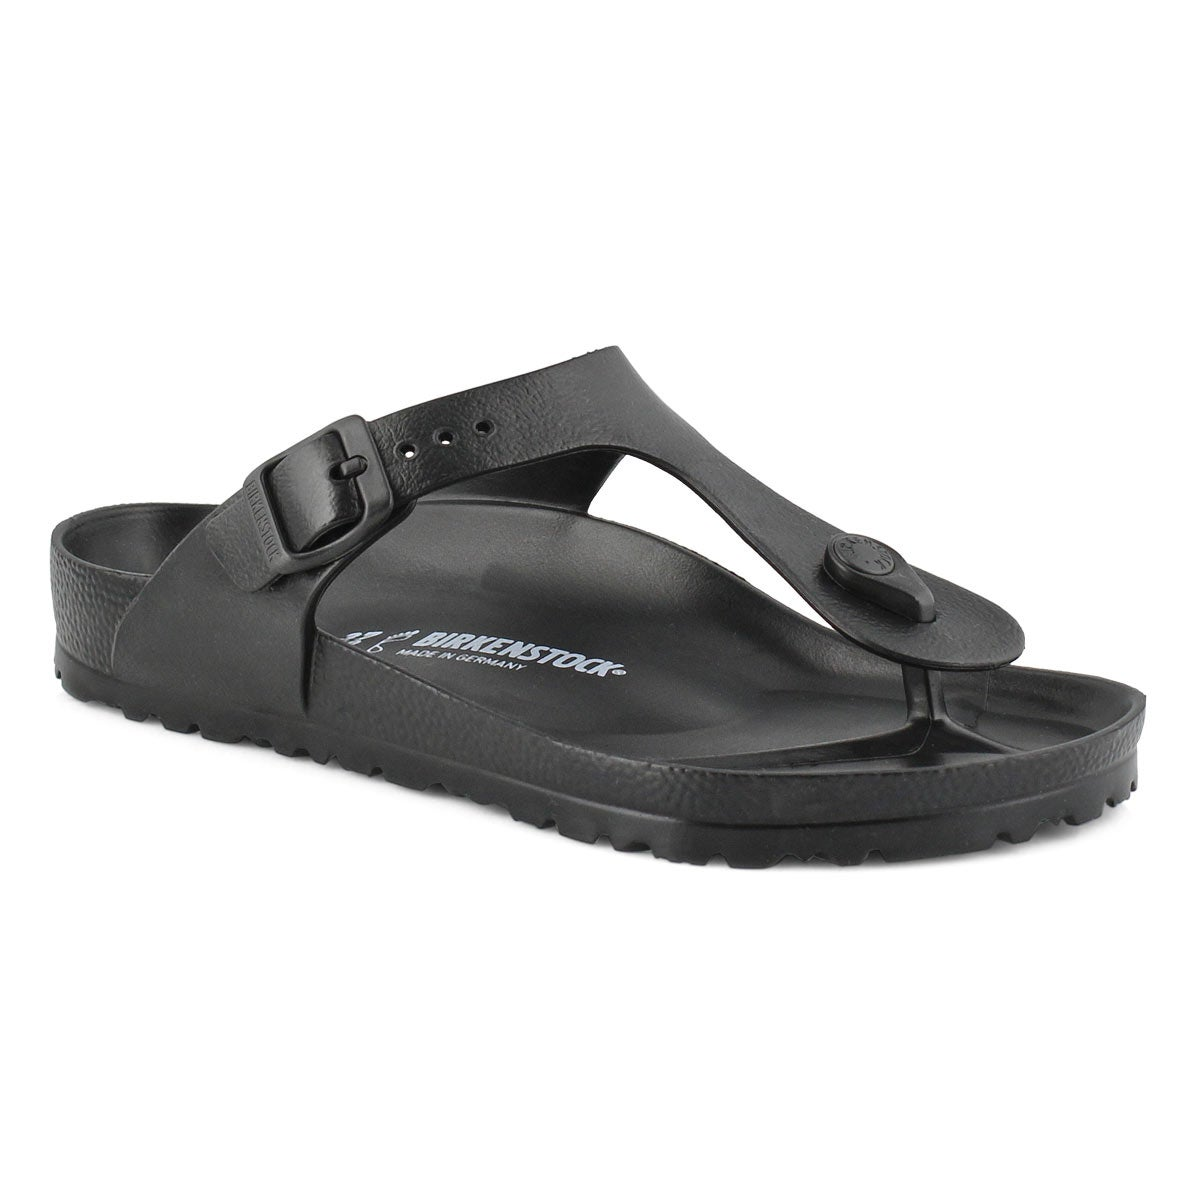 Women's GIZEH black thong sandals